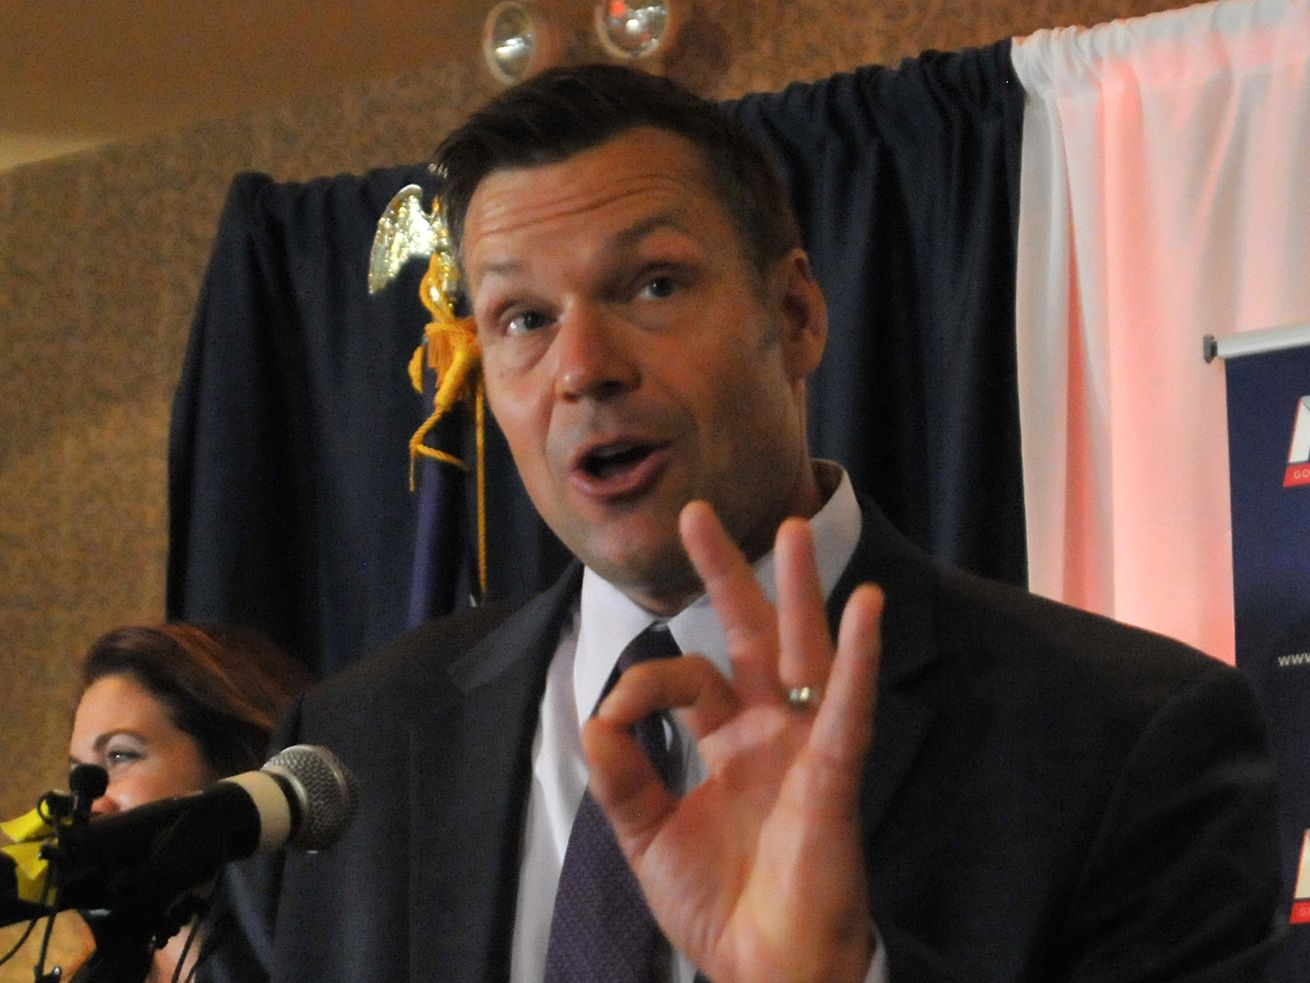 Republican primary candidate for Kansas governor, Kris Kobach, speaks to supporters just after midnight on August 8 after a primary that's still too close to call.